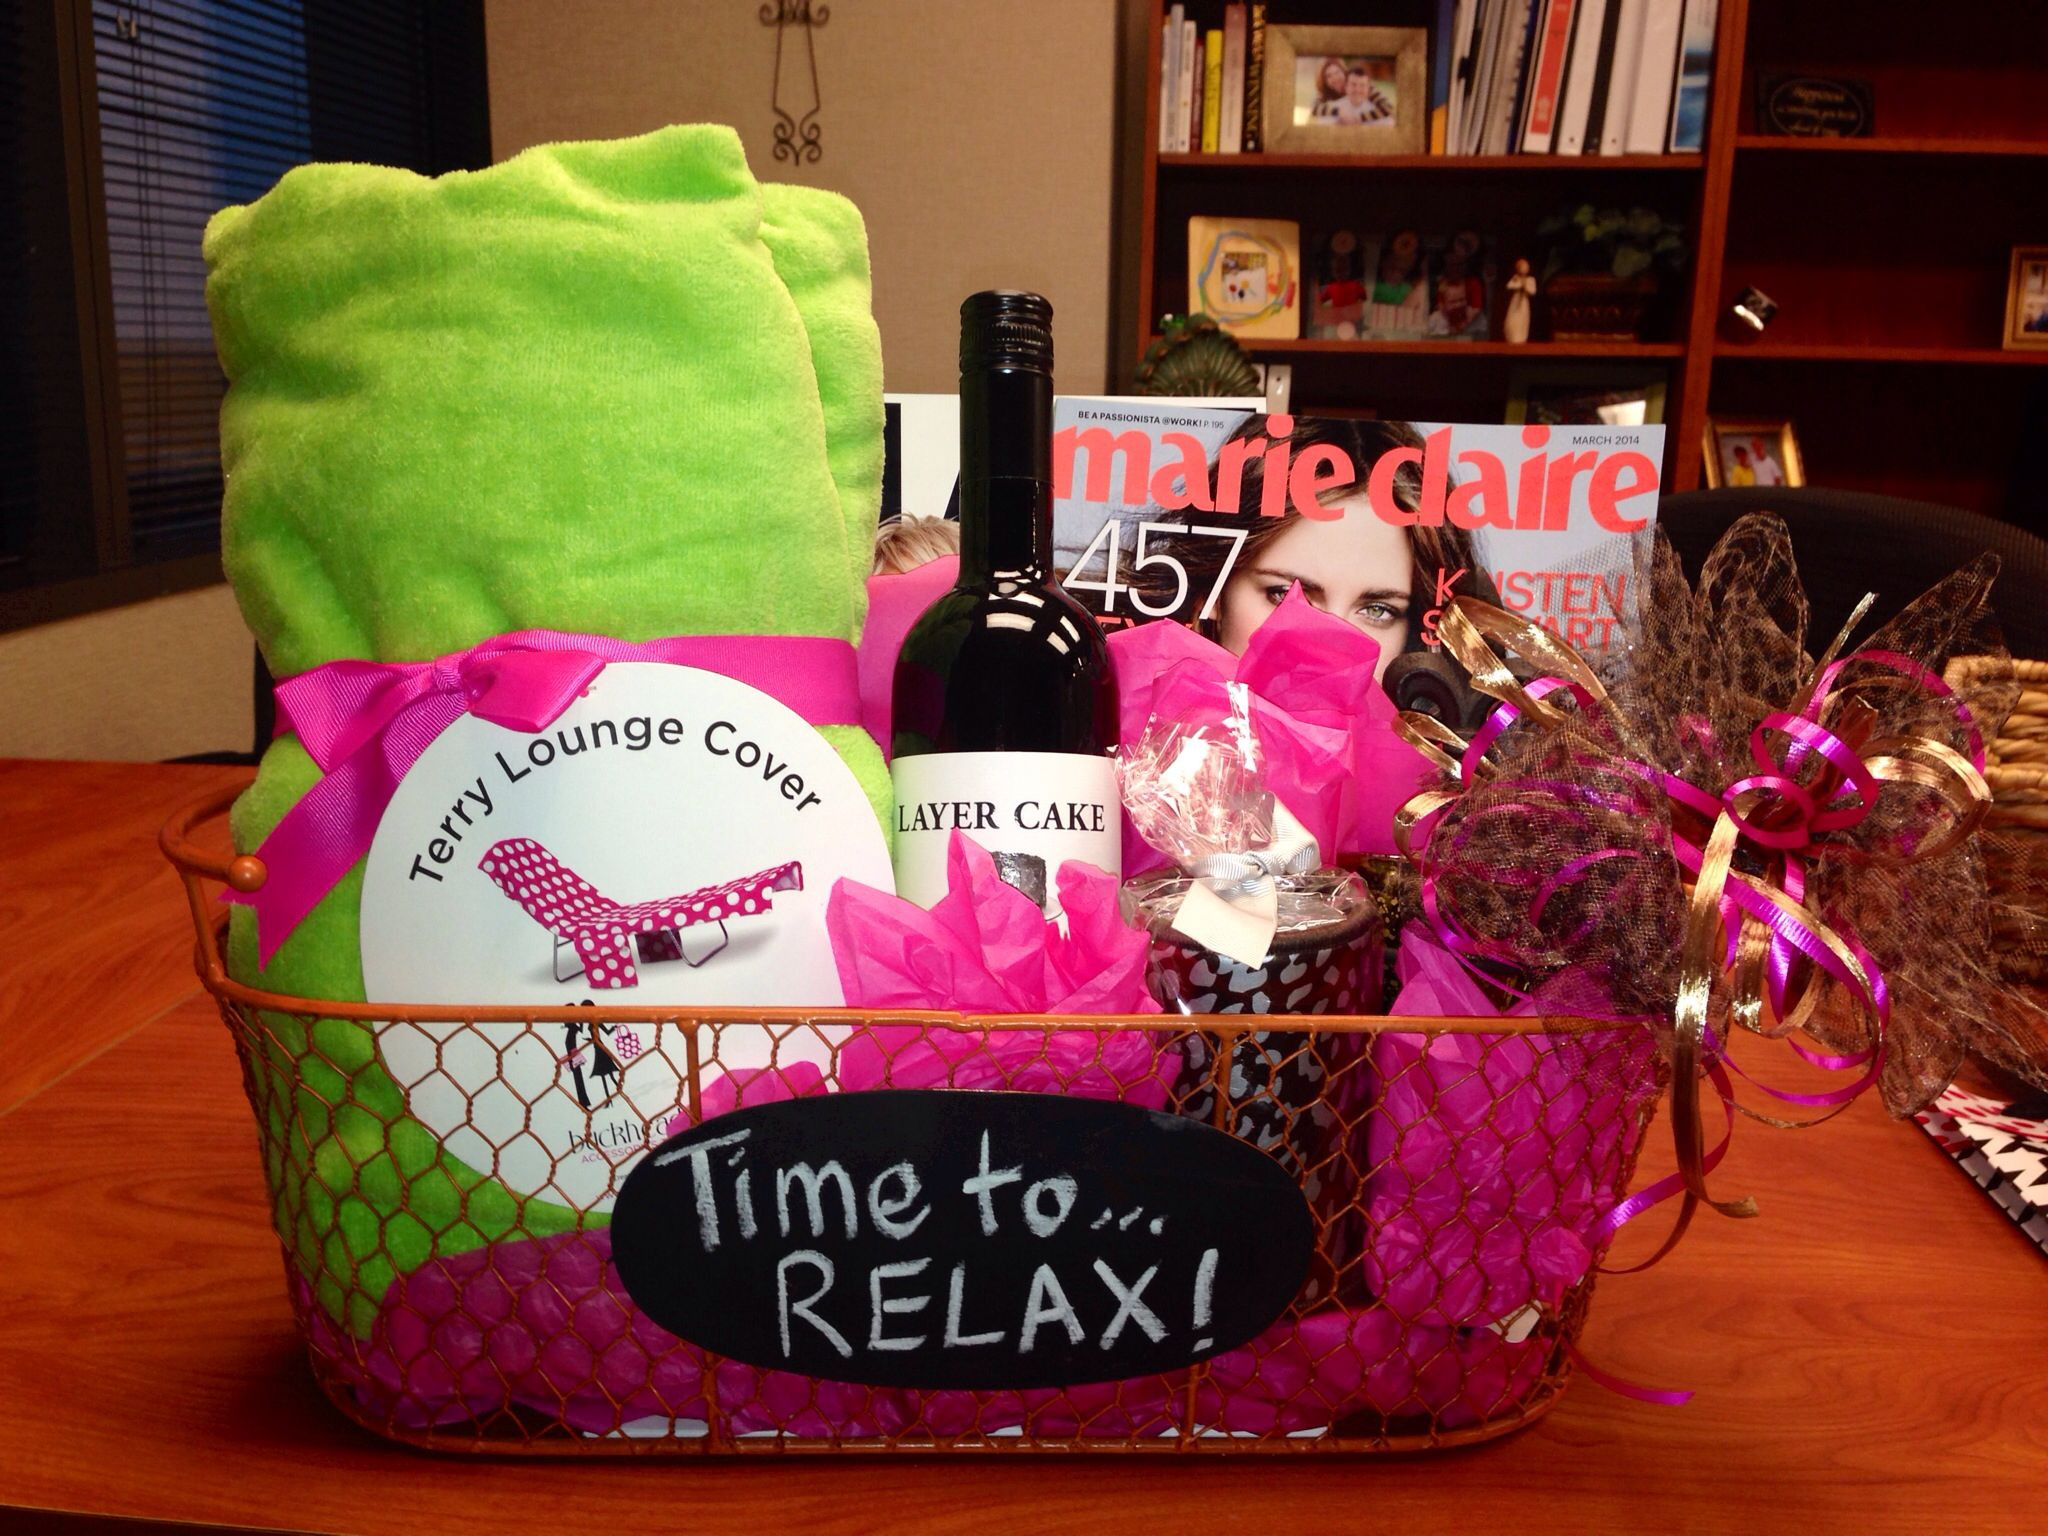 Best ideas about Relaxation Gift Ideas . Save or Pin Relaxation Gift Basket CUTE GIFT IDEAS Now.